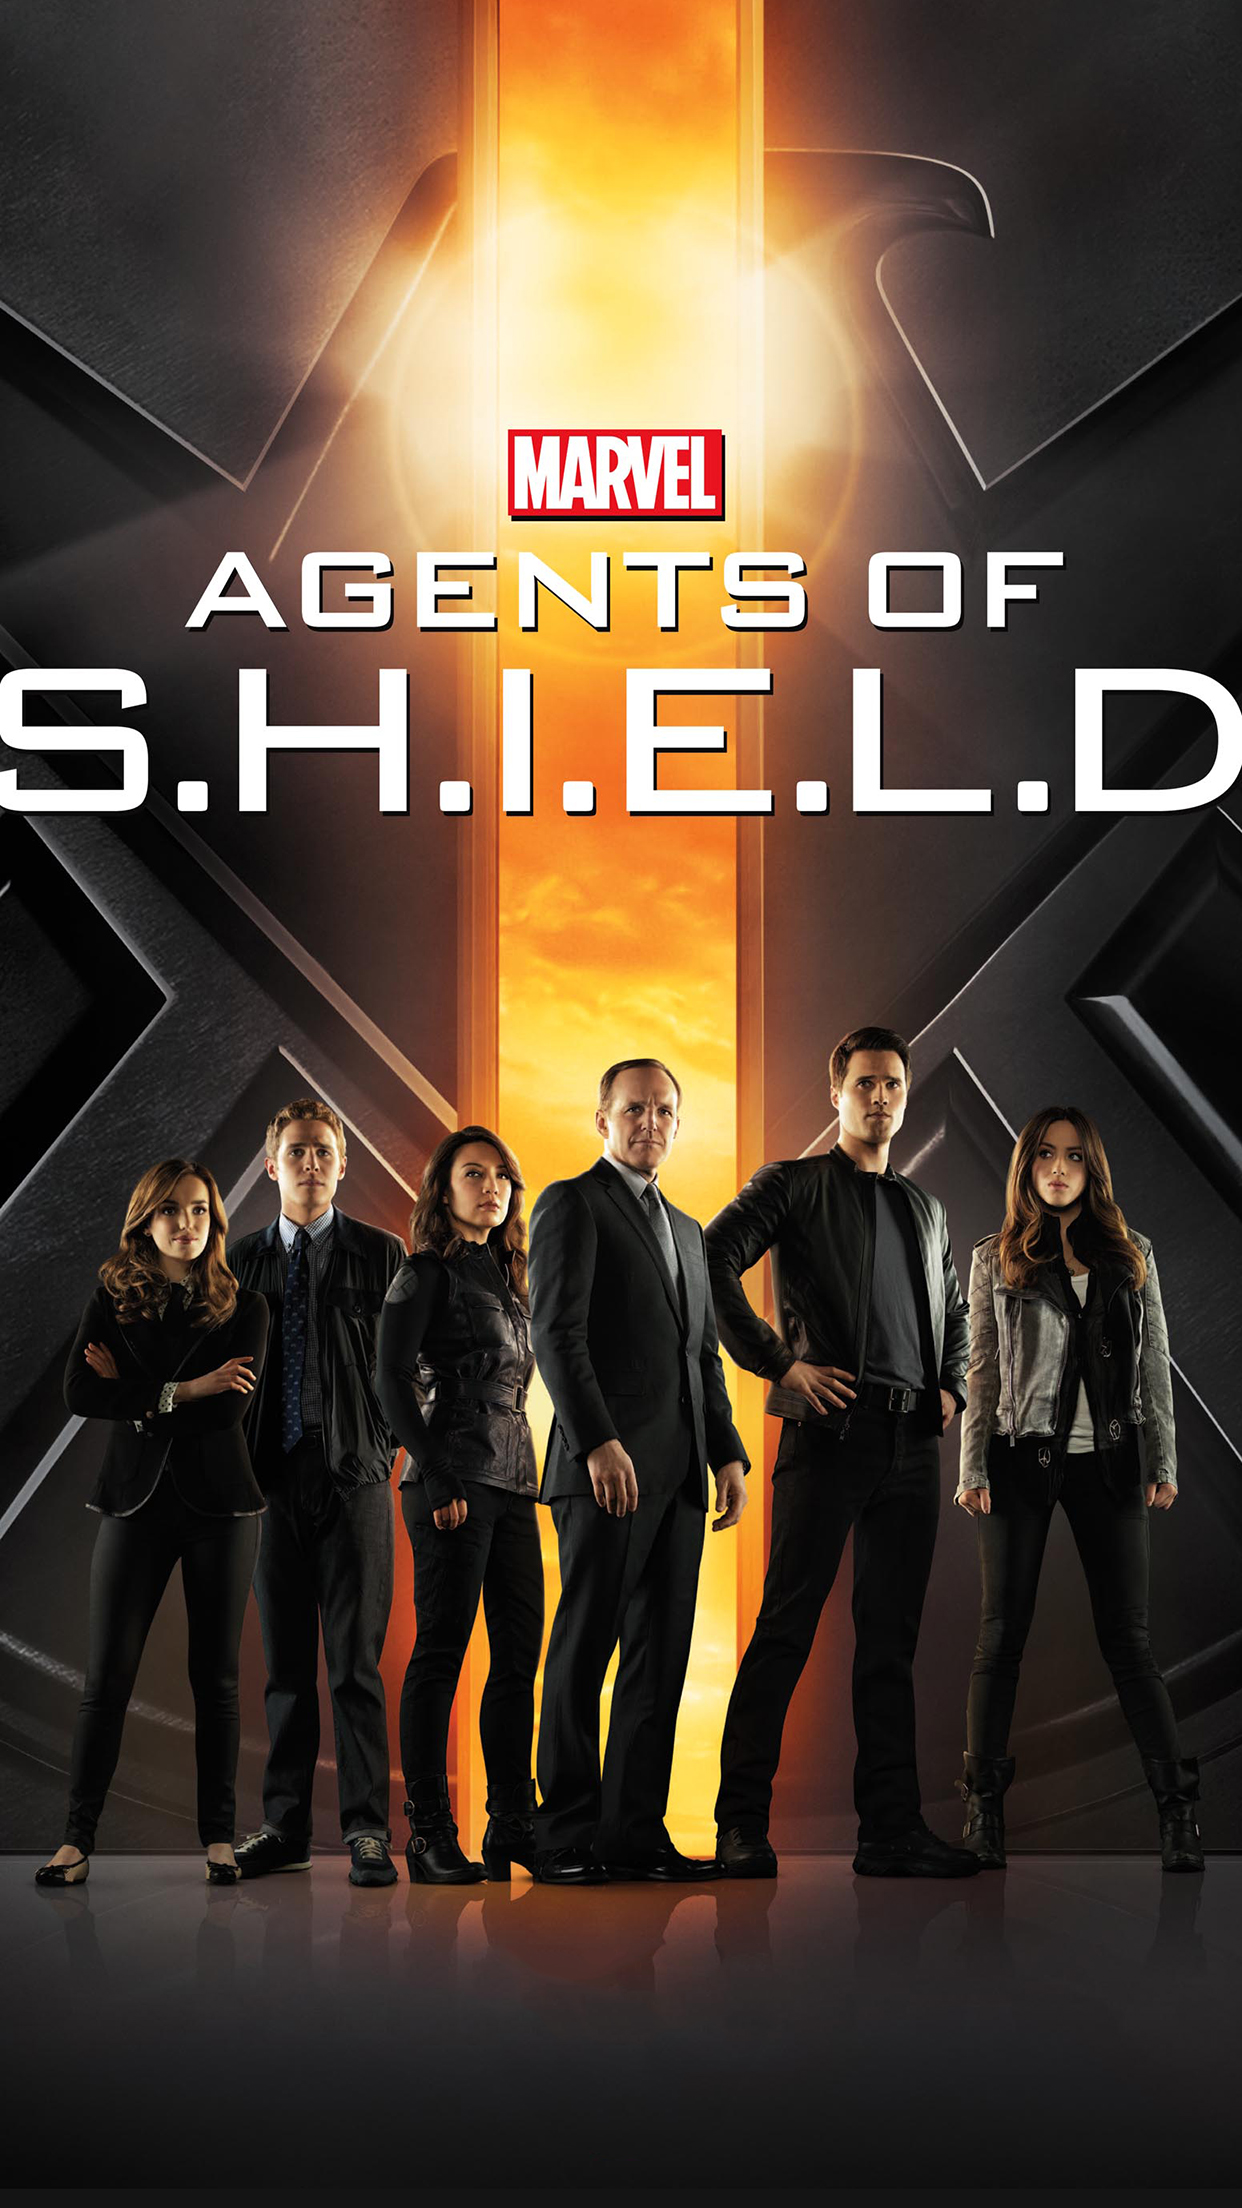 Agents Of Shield Poster 3Wallpapers iPhone Parallax Agents Of Shield : Poster